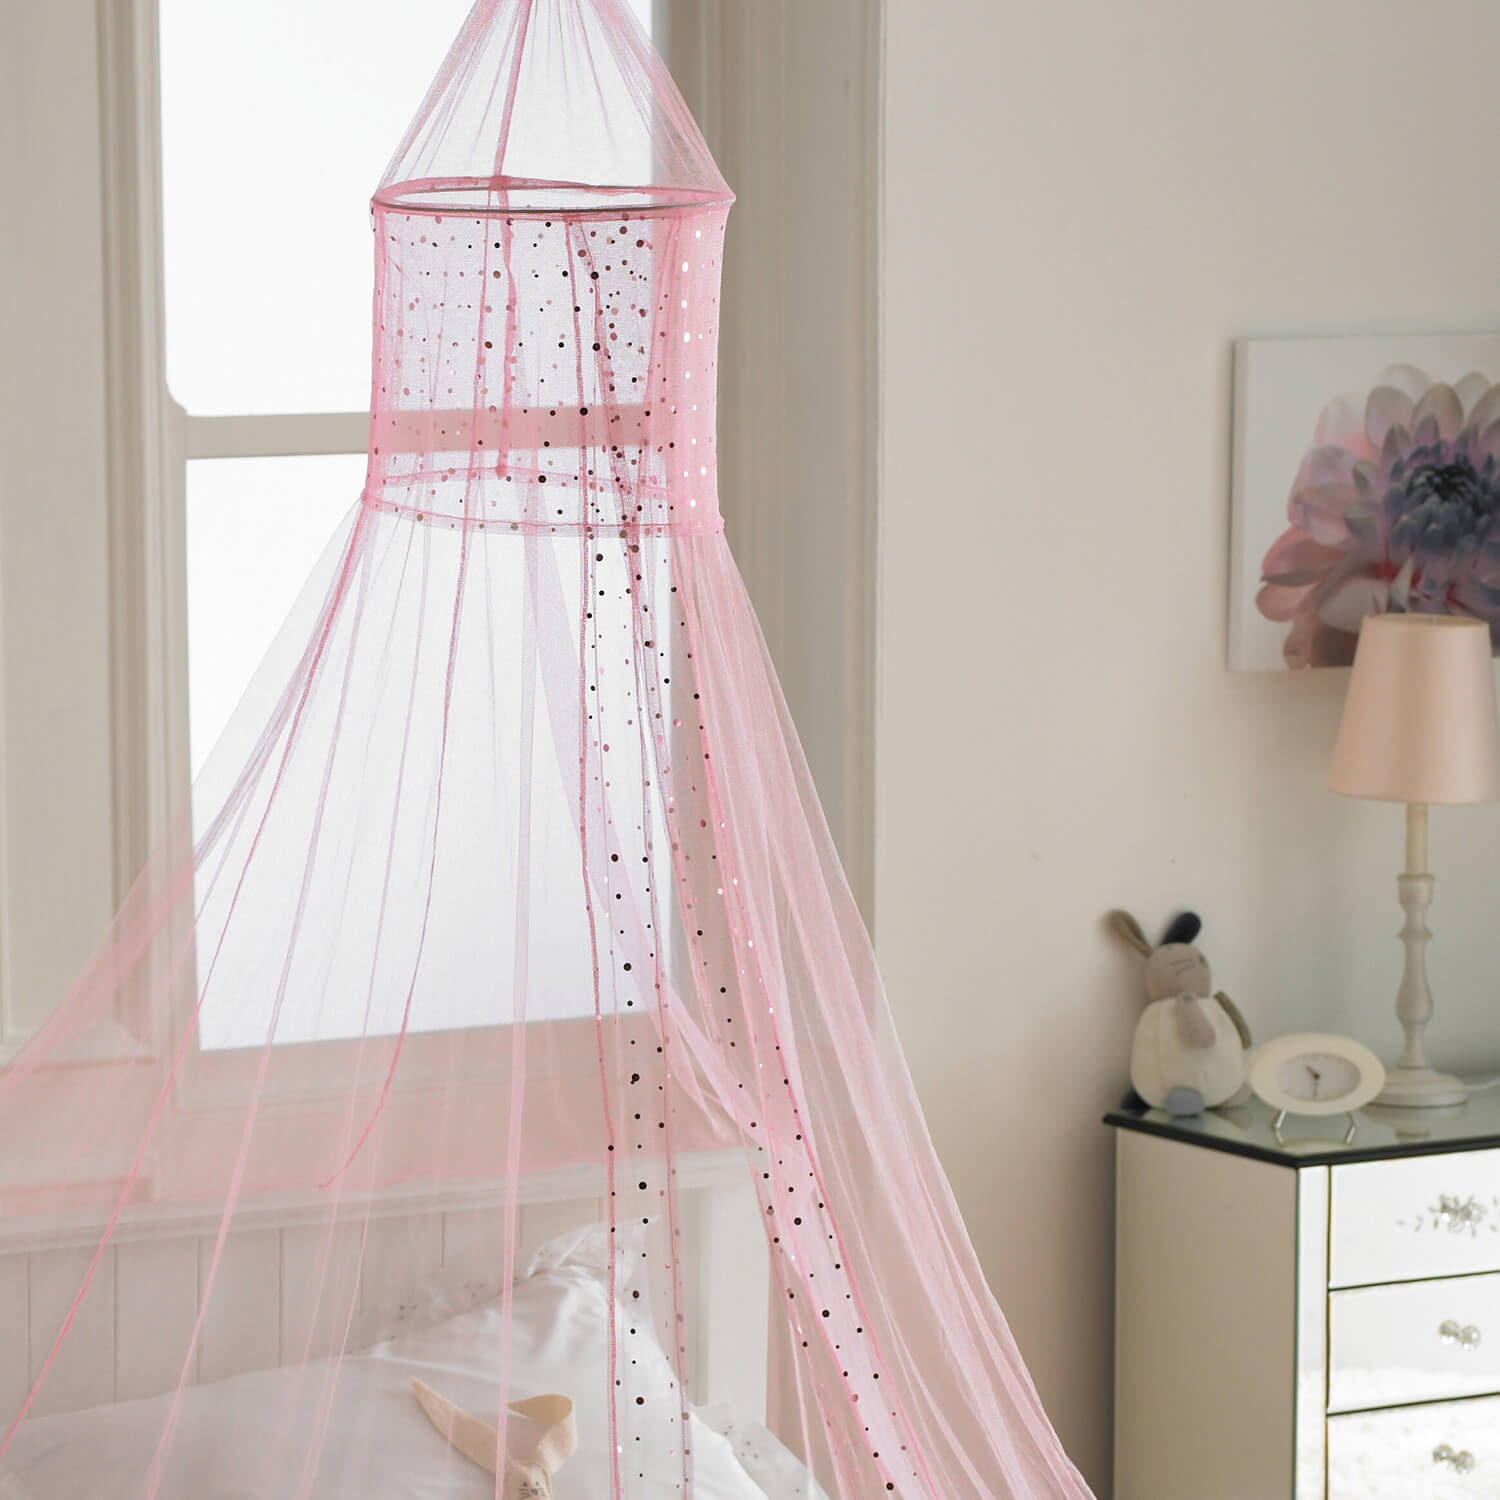 Canopy Popsicle Pink 040675 Country Club 5023674066283 & Canopy Popsicle Pink - Home Store + More